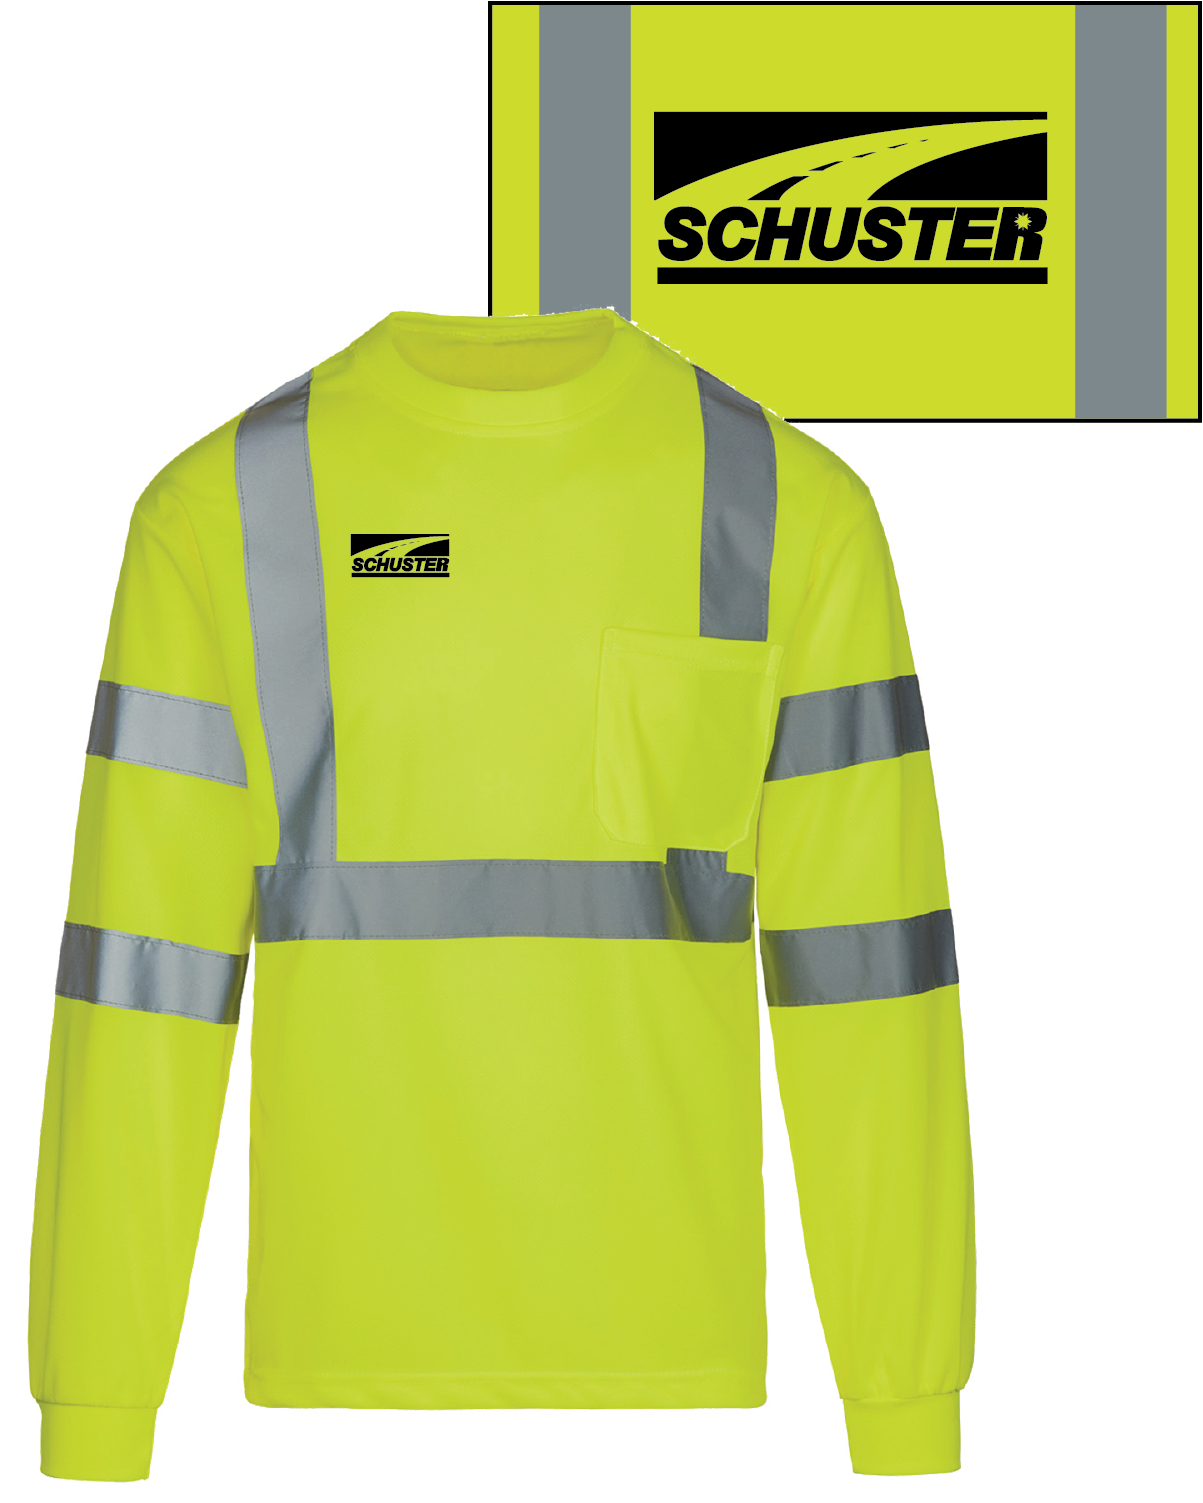 Schuster MAX Safety Long Sleeve Shirt